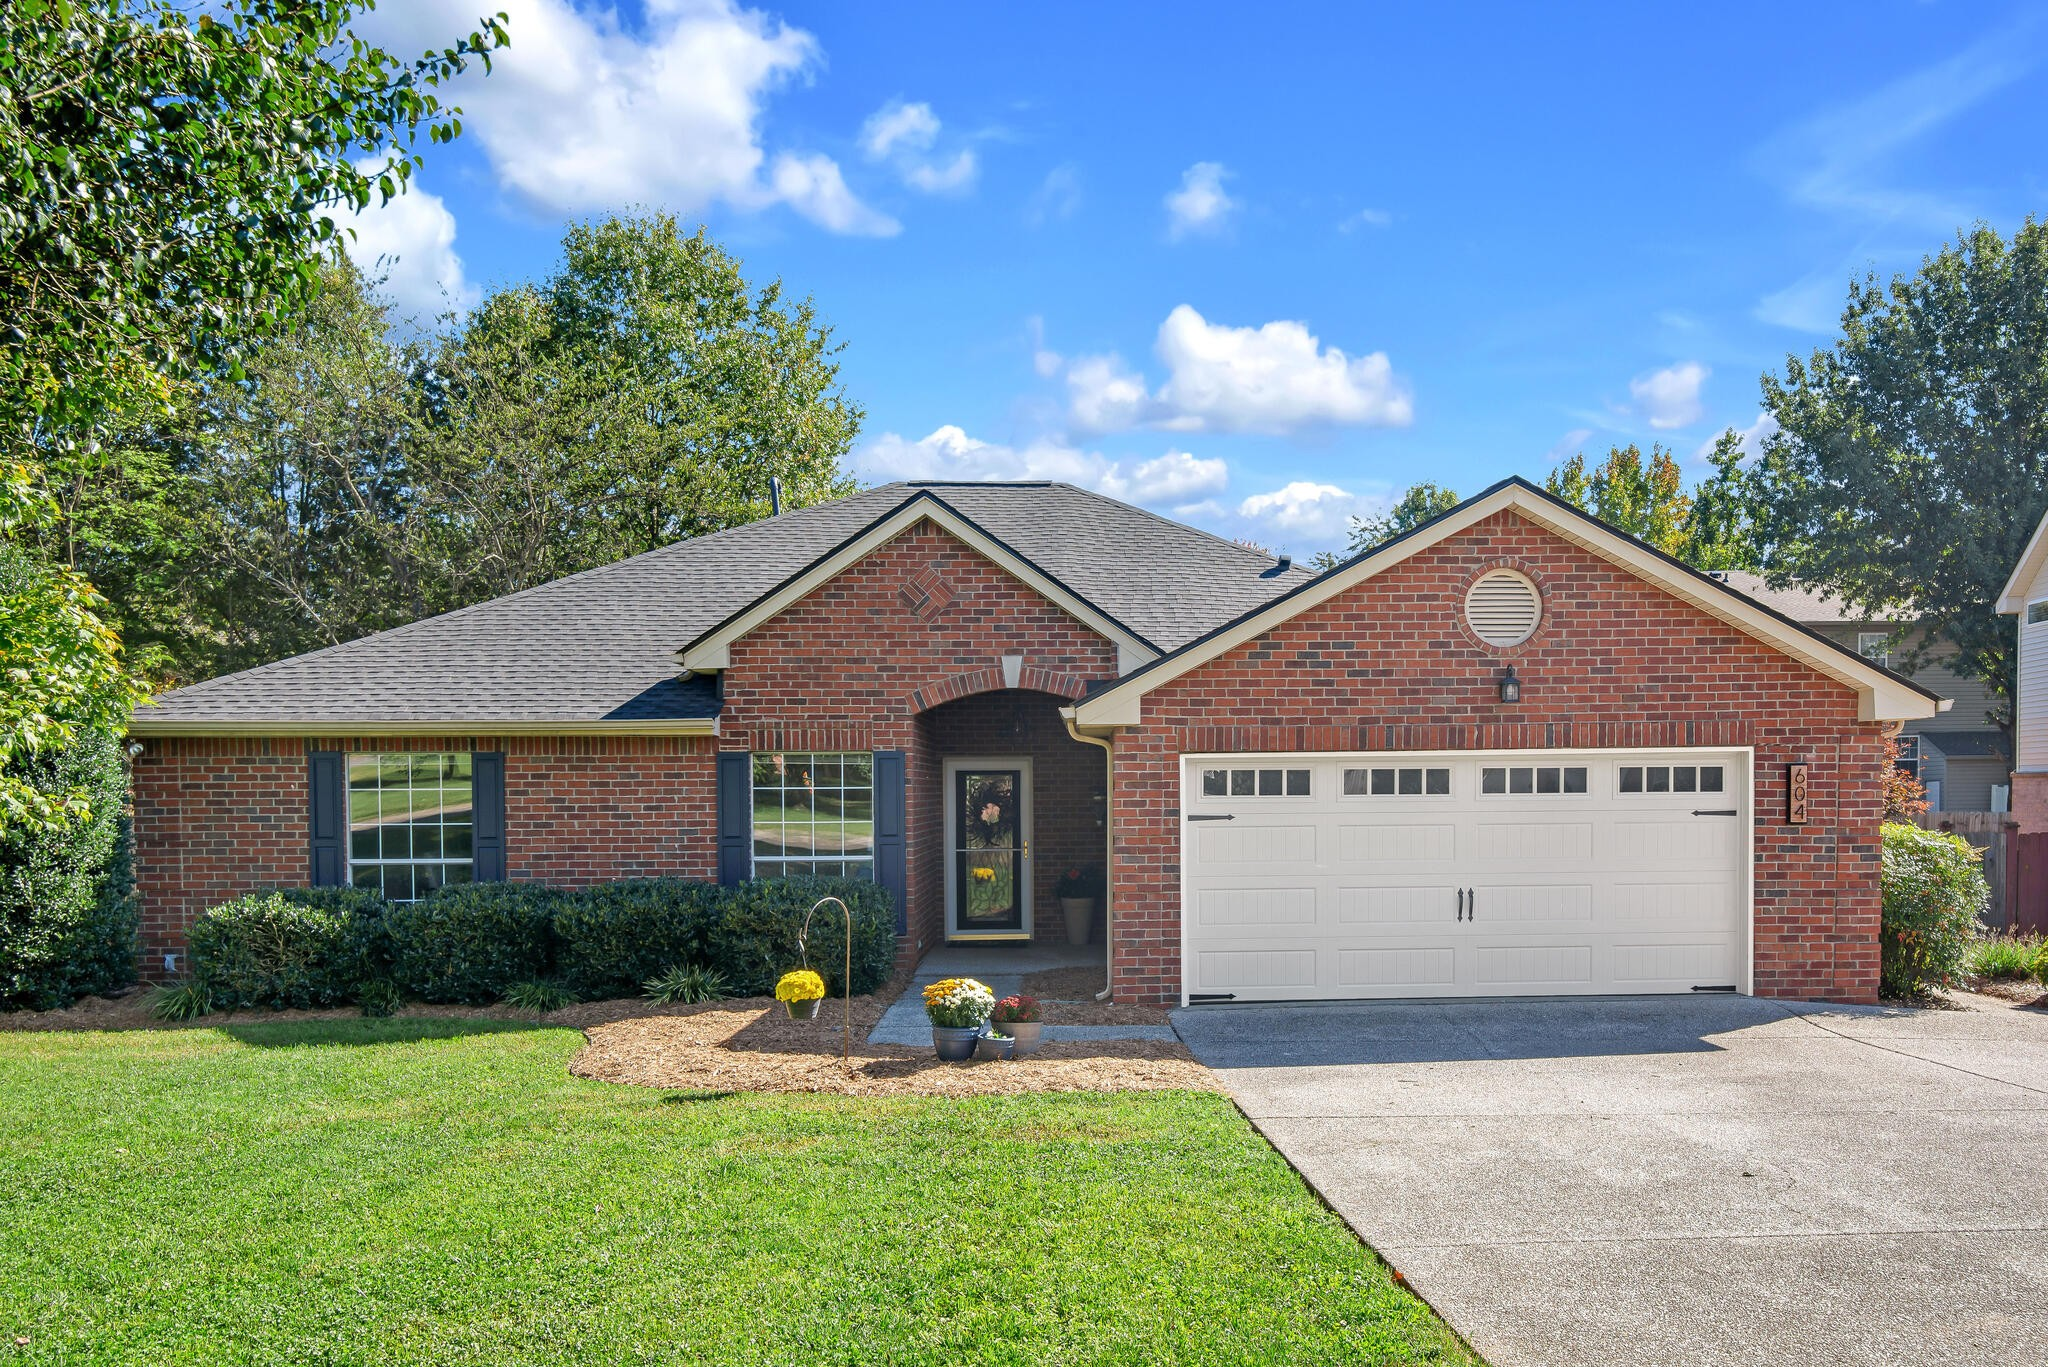 """This home has it all! Williamson County schools, one level living, a secluded fenced-in backyard complete with a new deck, a true owner's suite and location on a cul-de-sac! Roof and water heater were replaced earlier this year. Guest bath completely updated. You will love calling this """"home."""""""